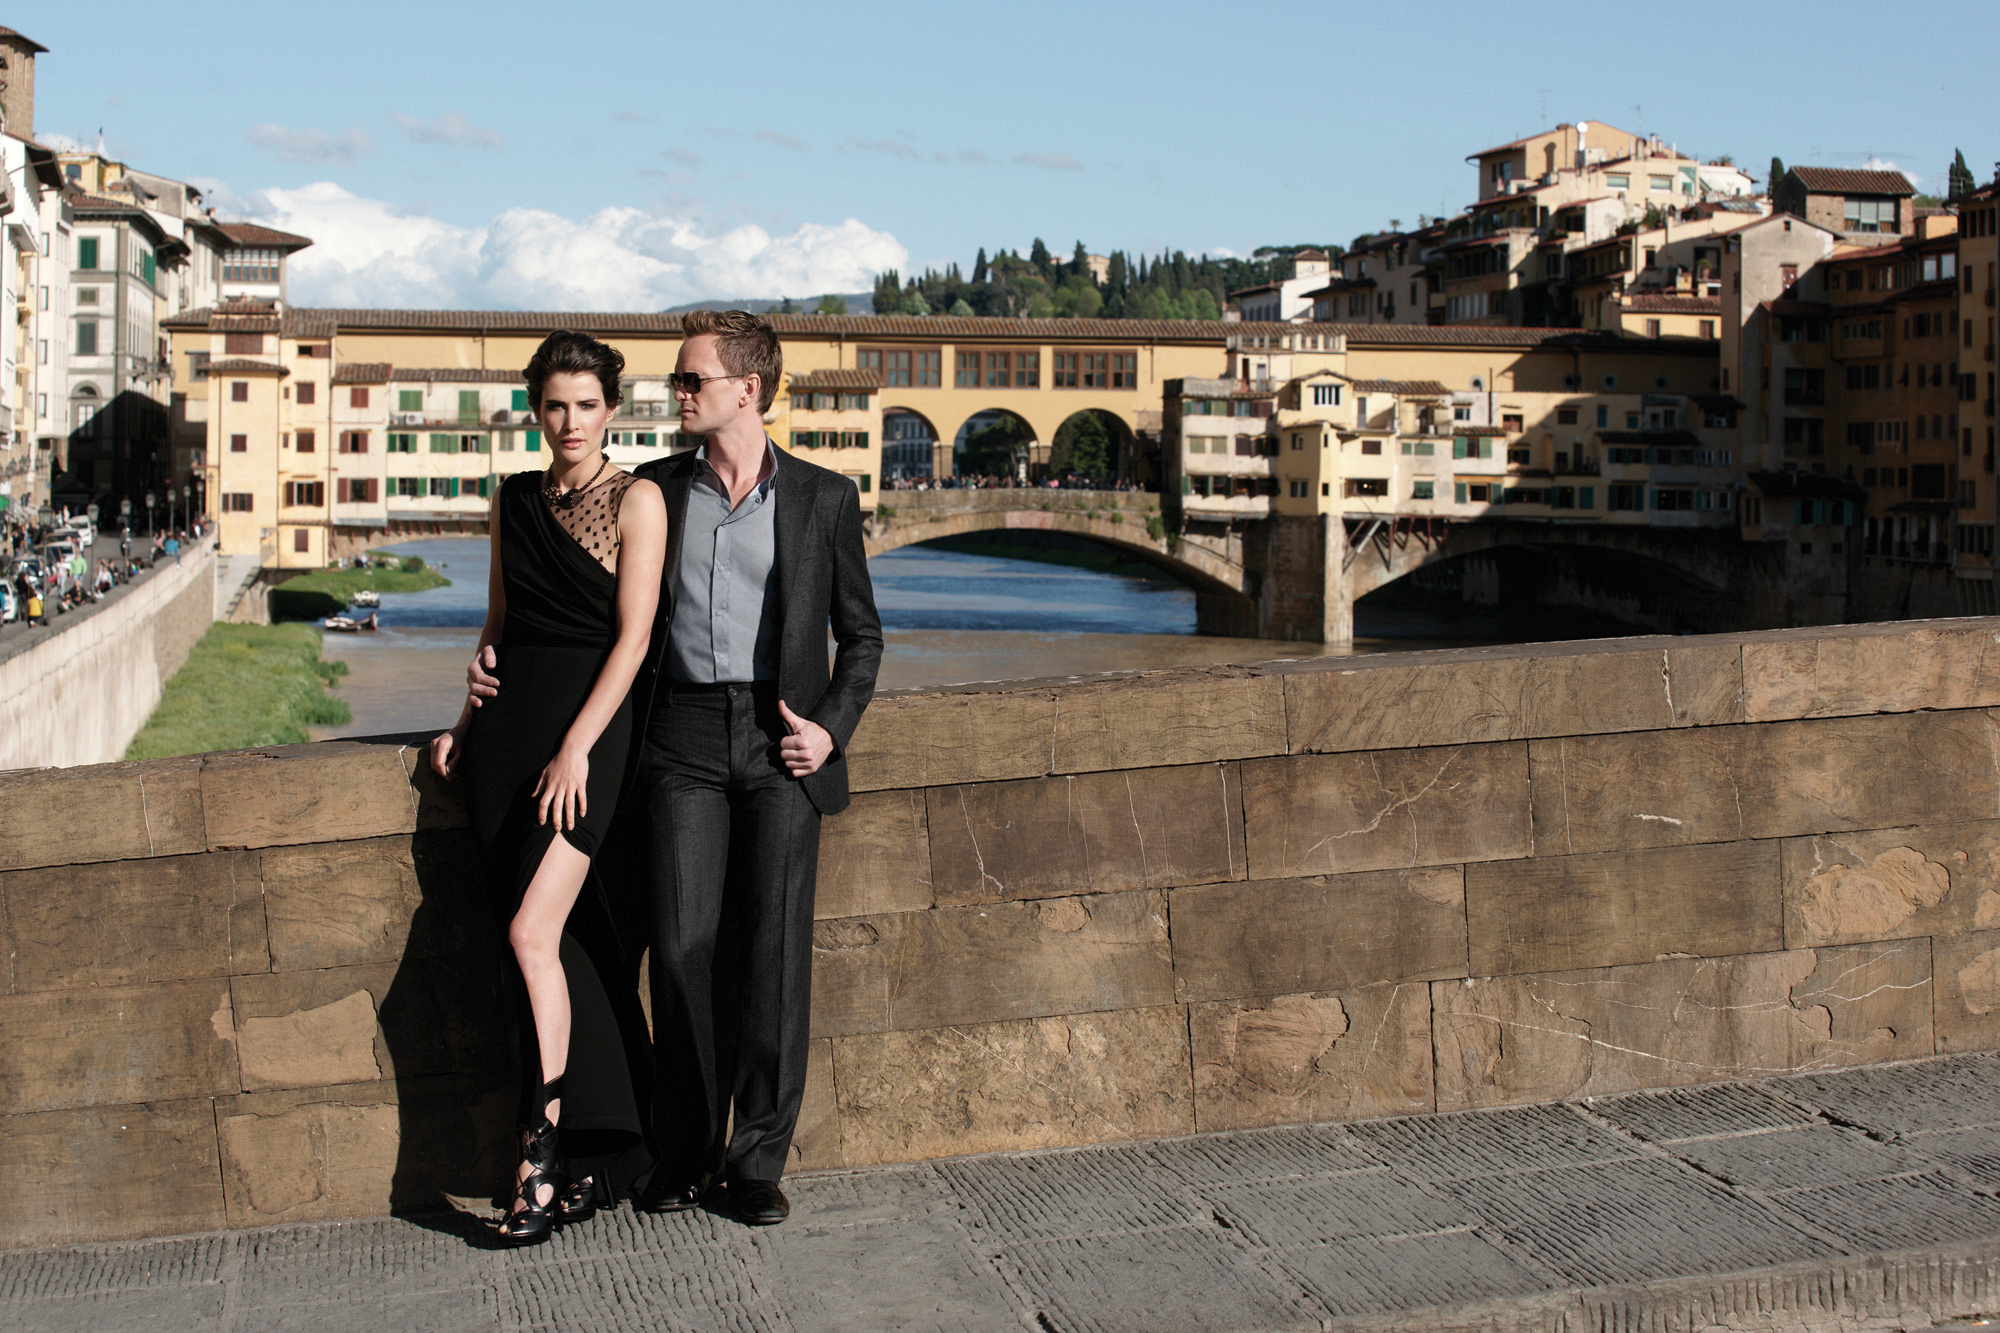 Neil Patrick Harris and Cobie Smulders in Florence